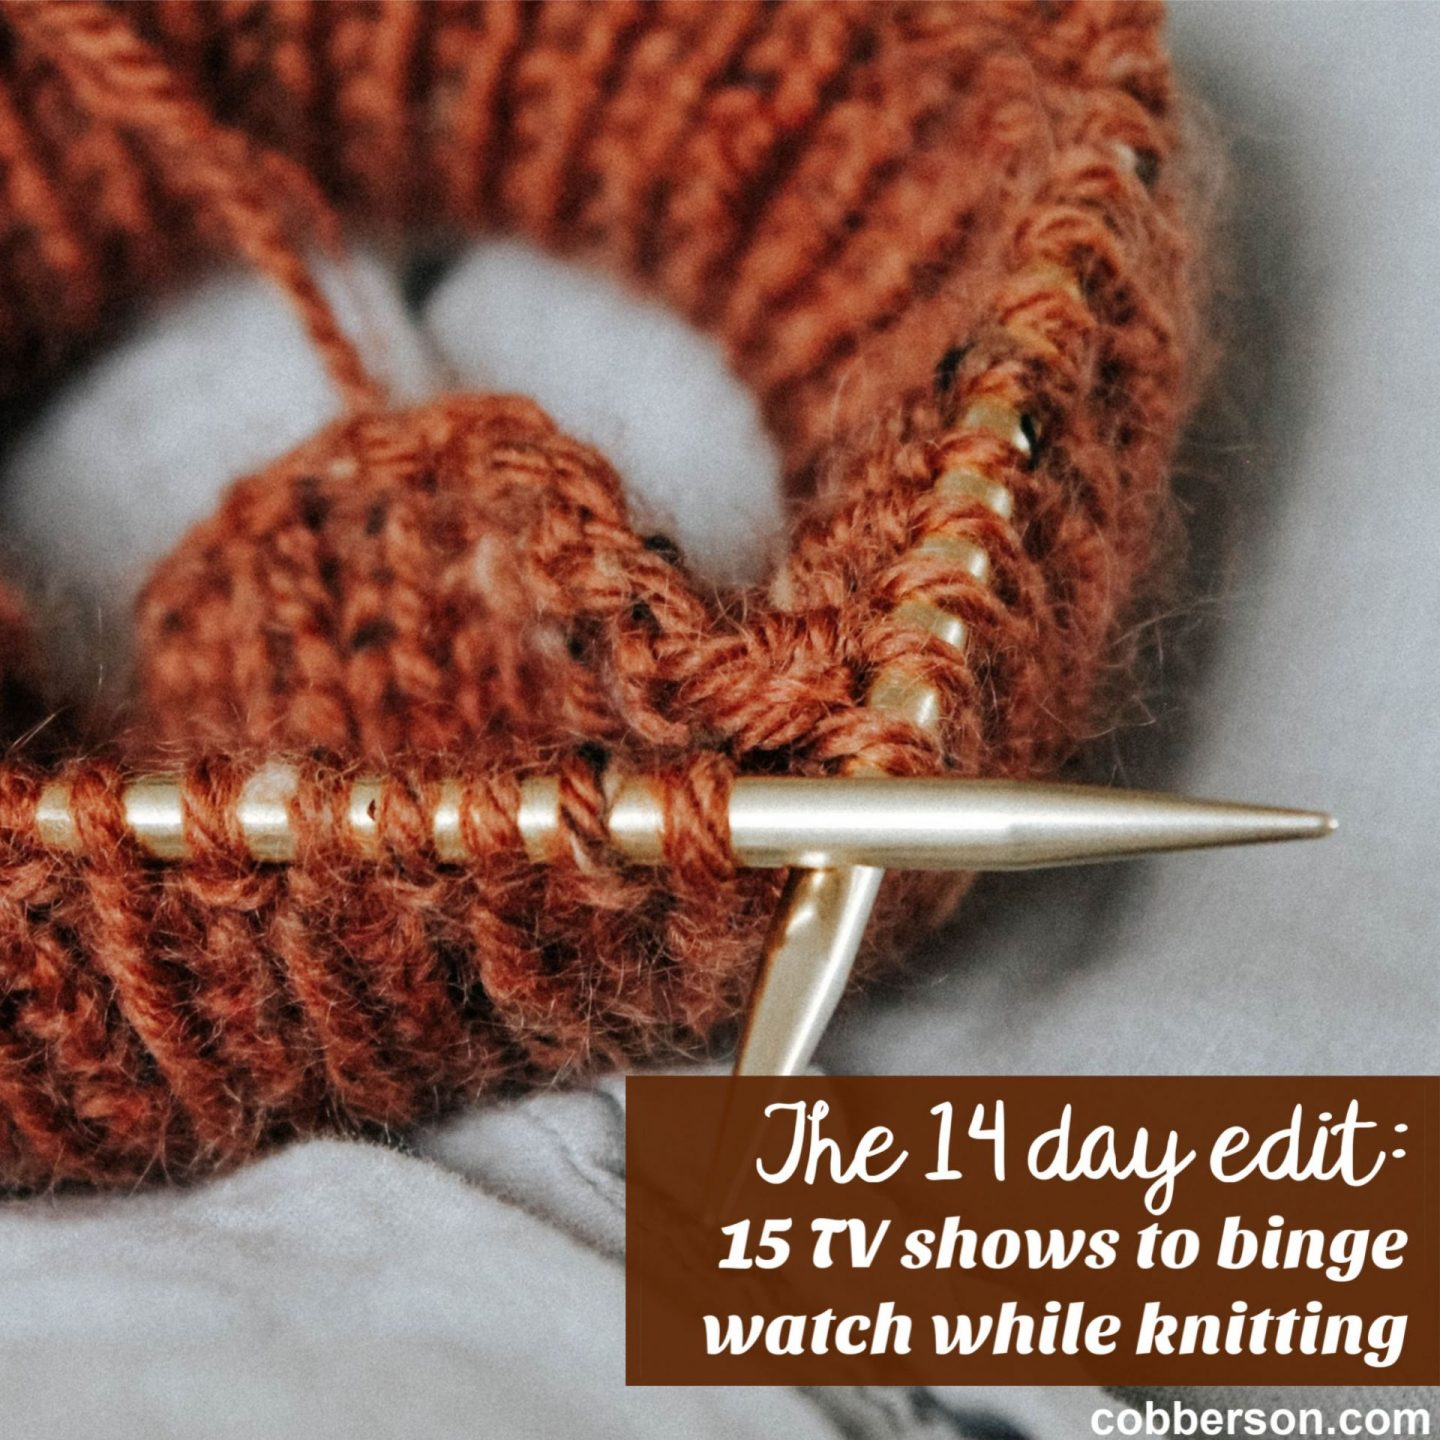 15 shows to binge watch while knitting